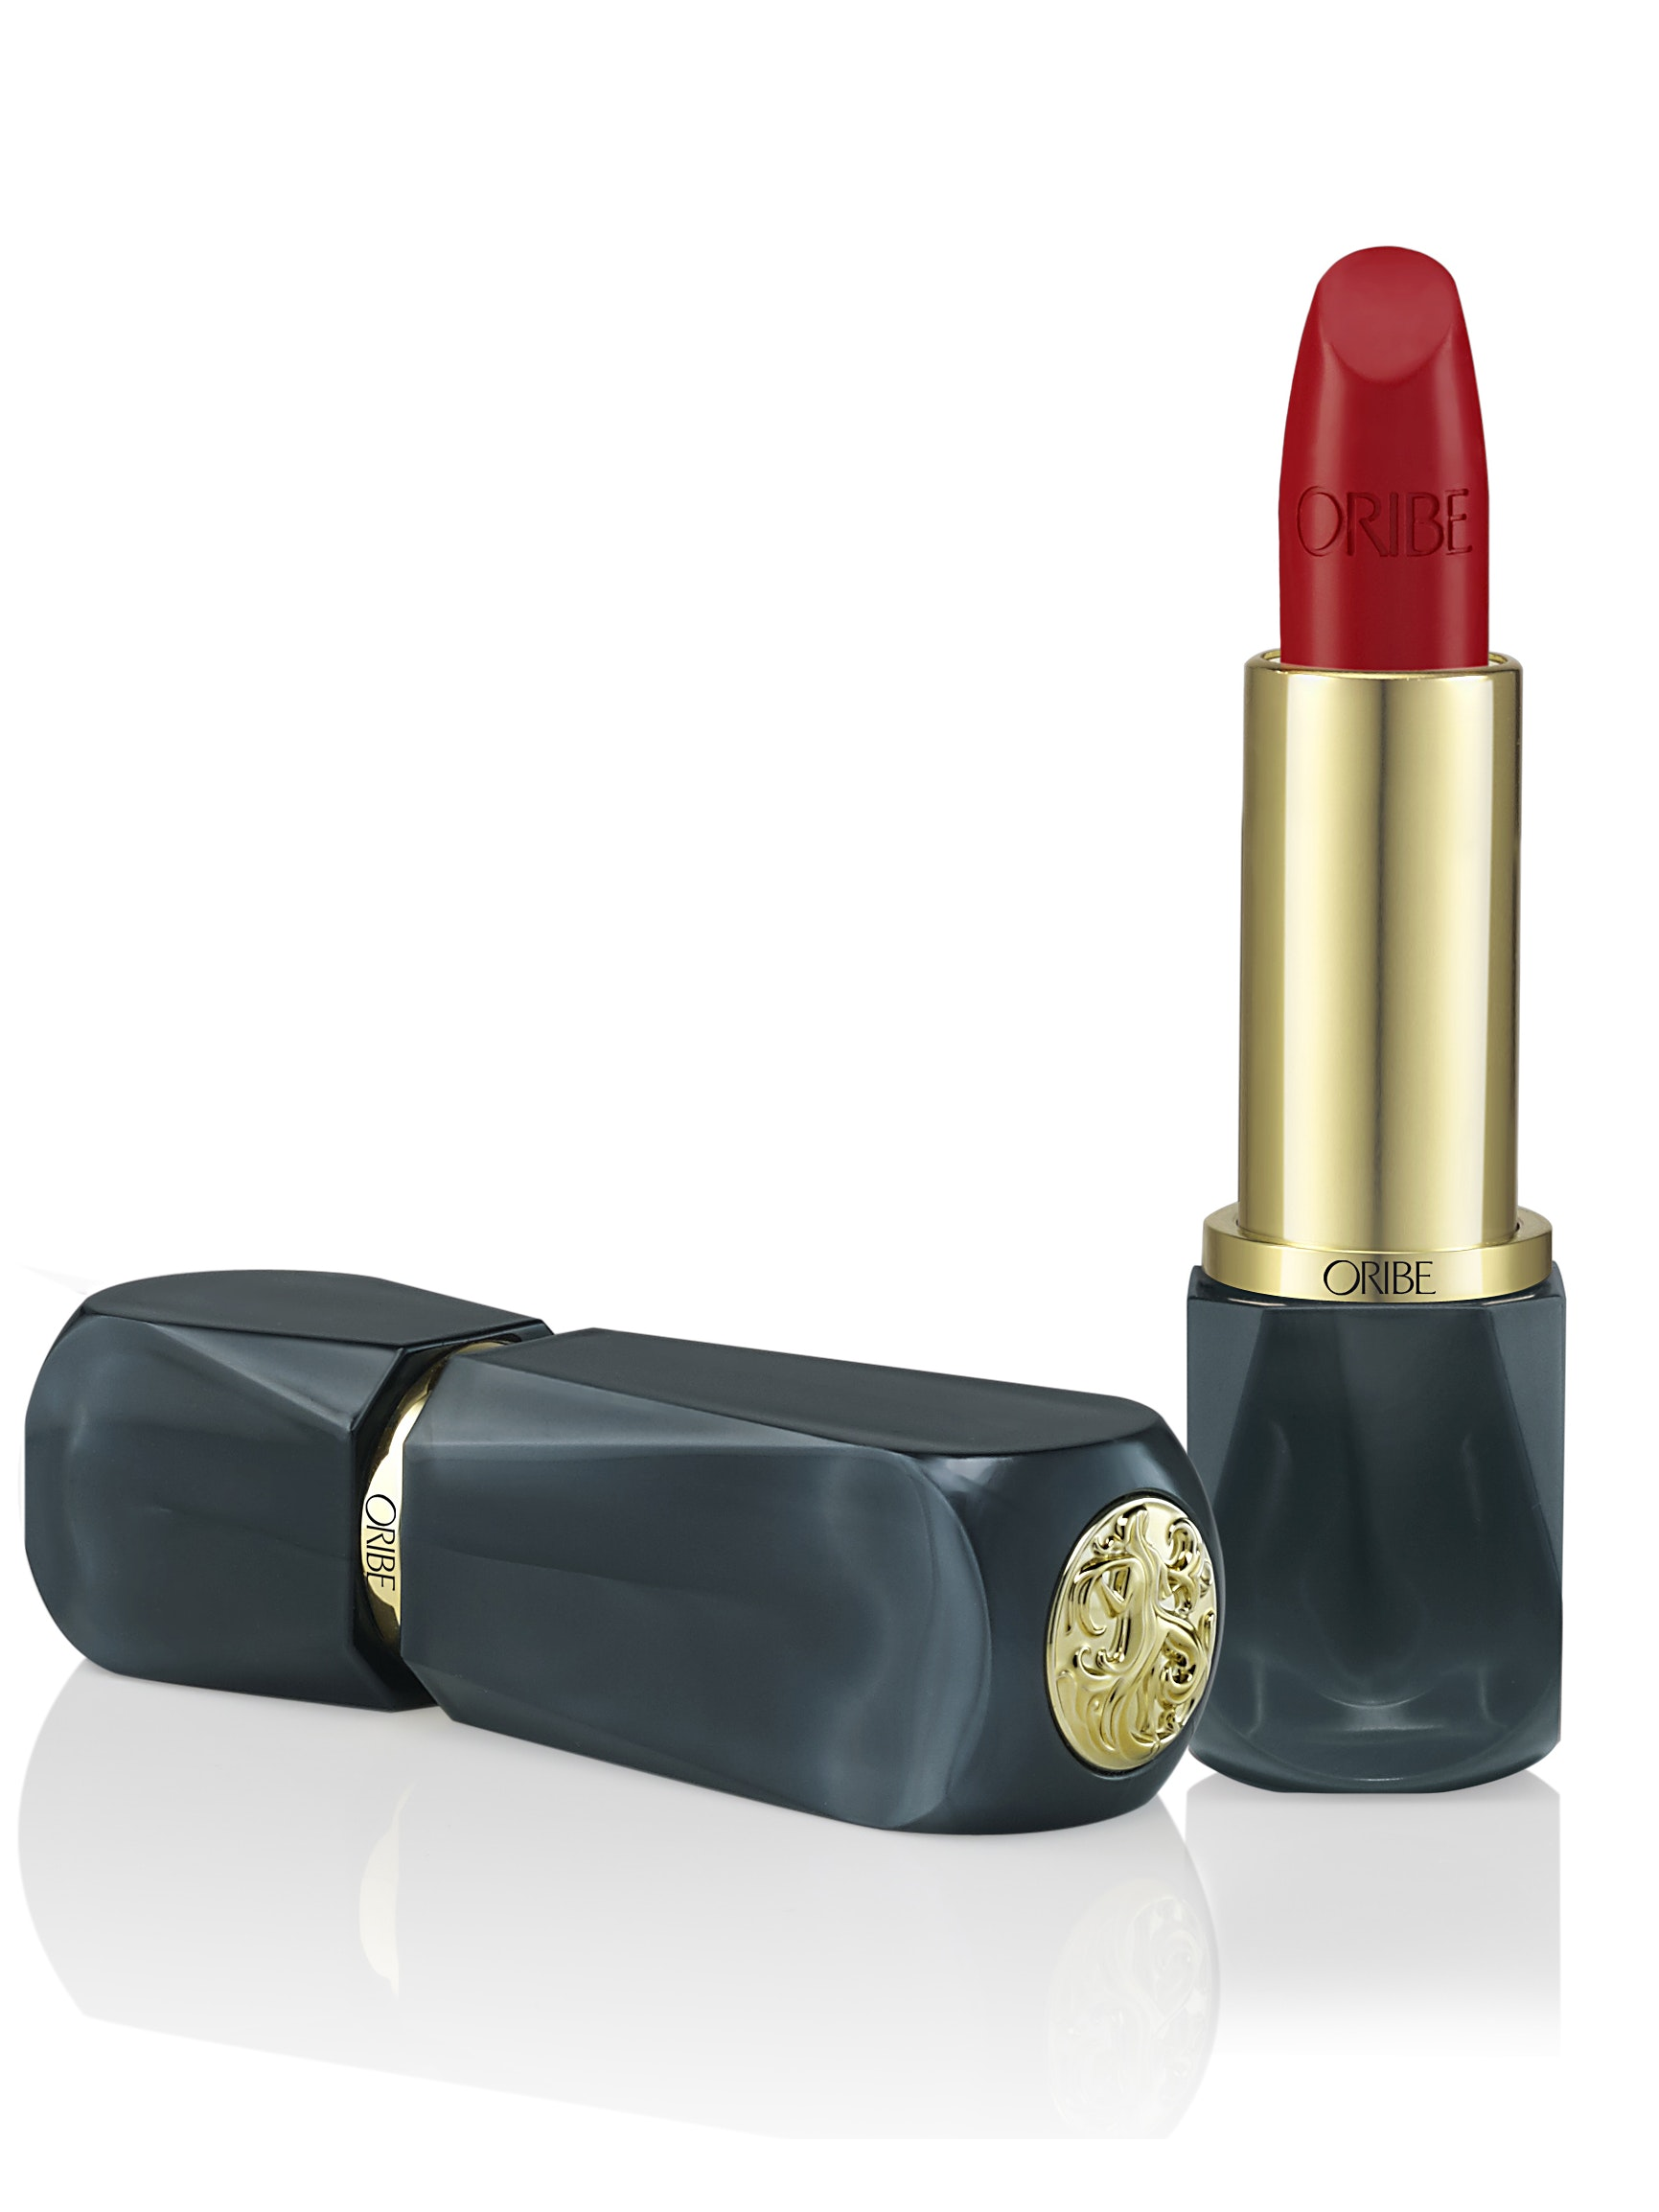 Oribe® Lust Crème™ Lipstick in The Red